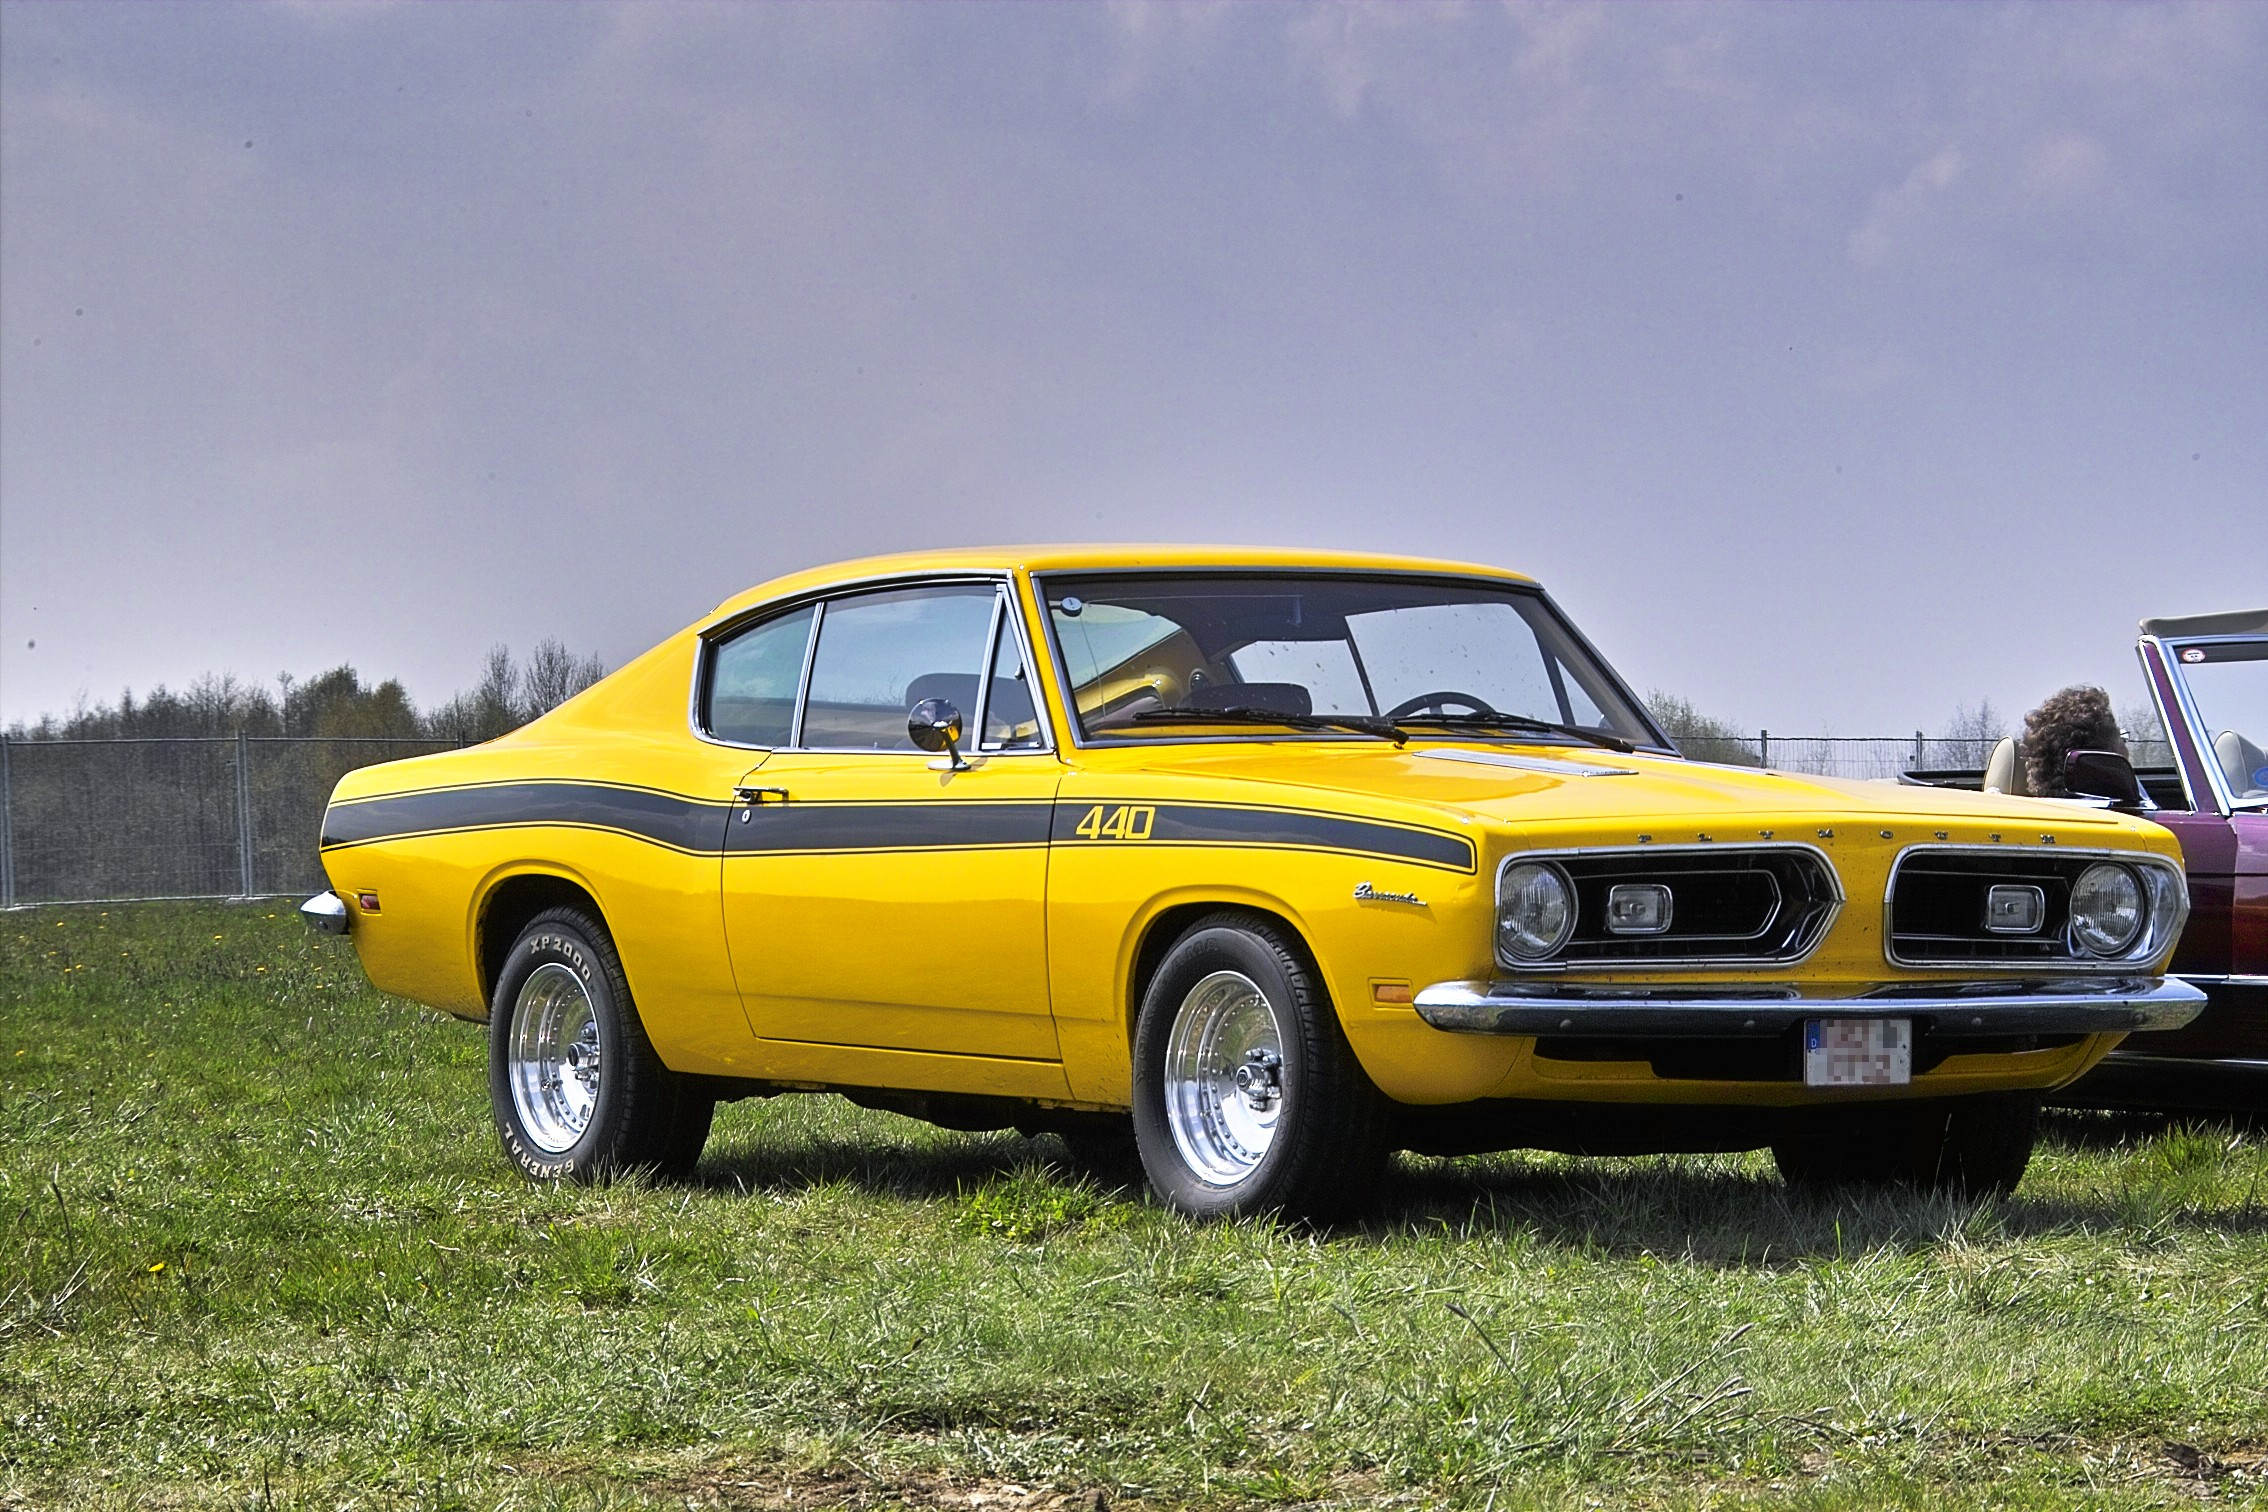 File:Plymouth barracuda 440 1969 front.jpg